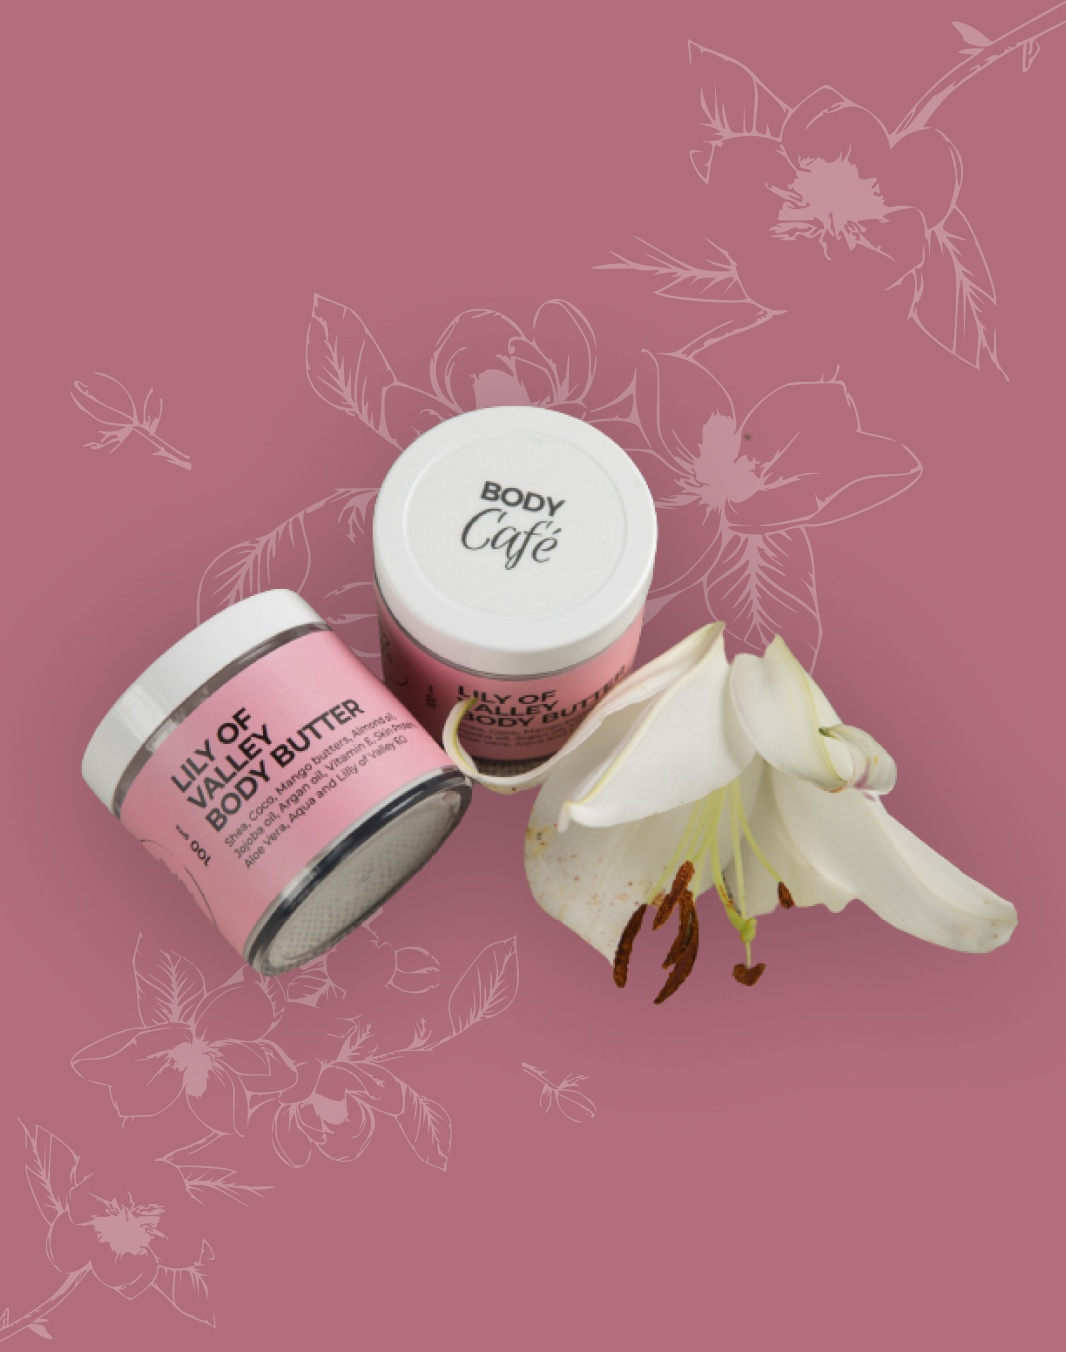 Lilly of the Valley Body Butter